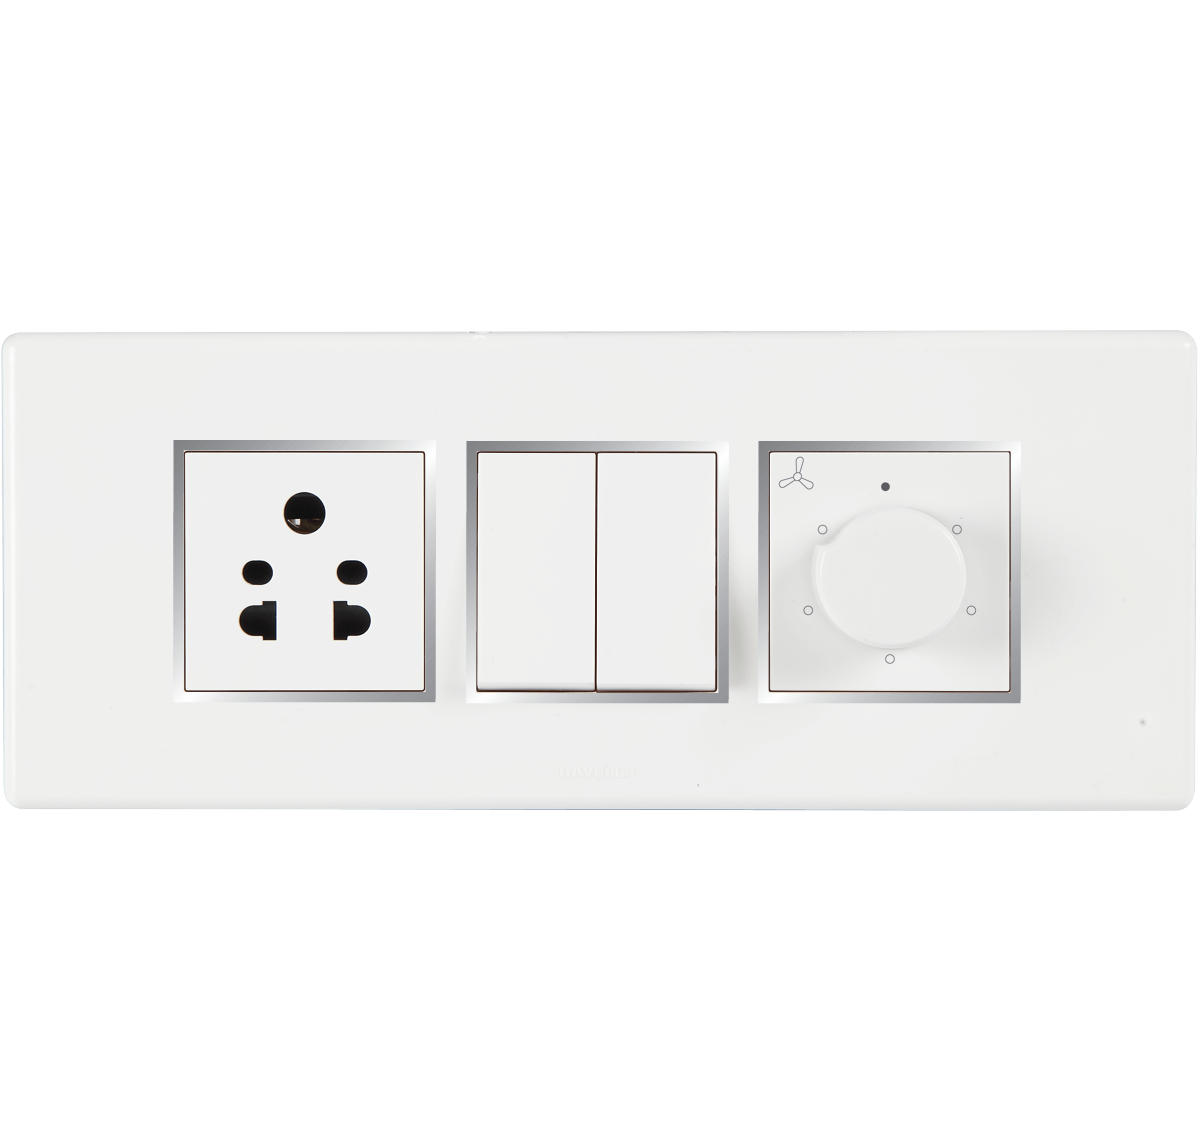 6M Frameio Front plate